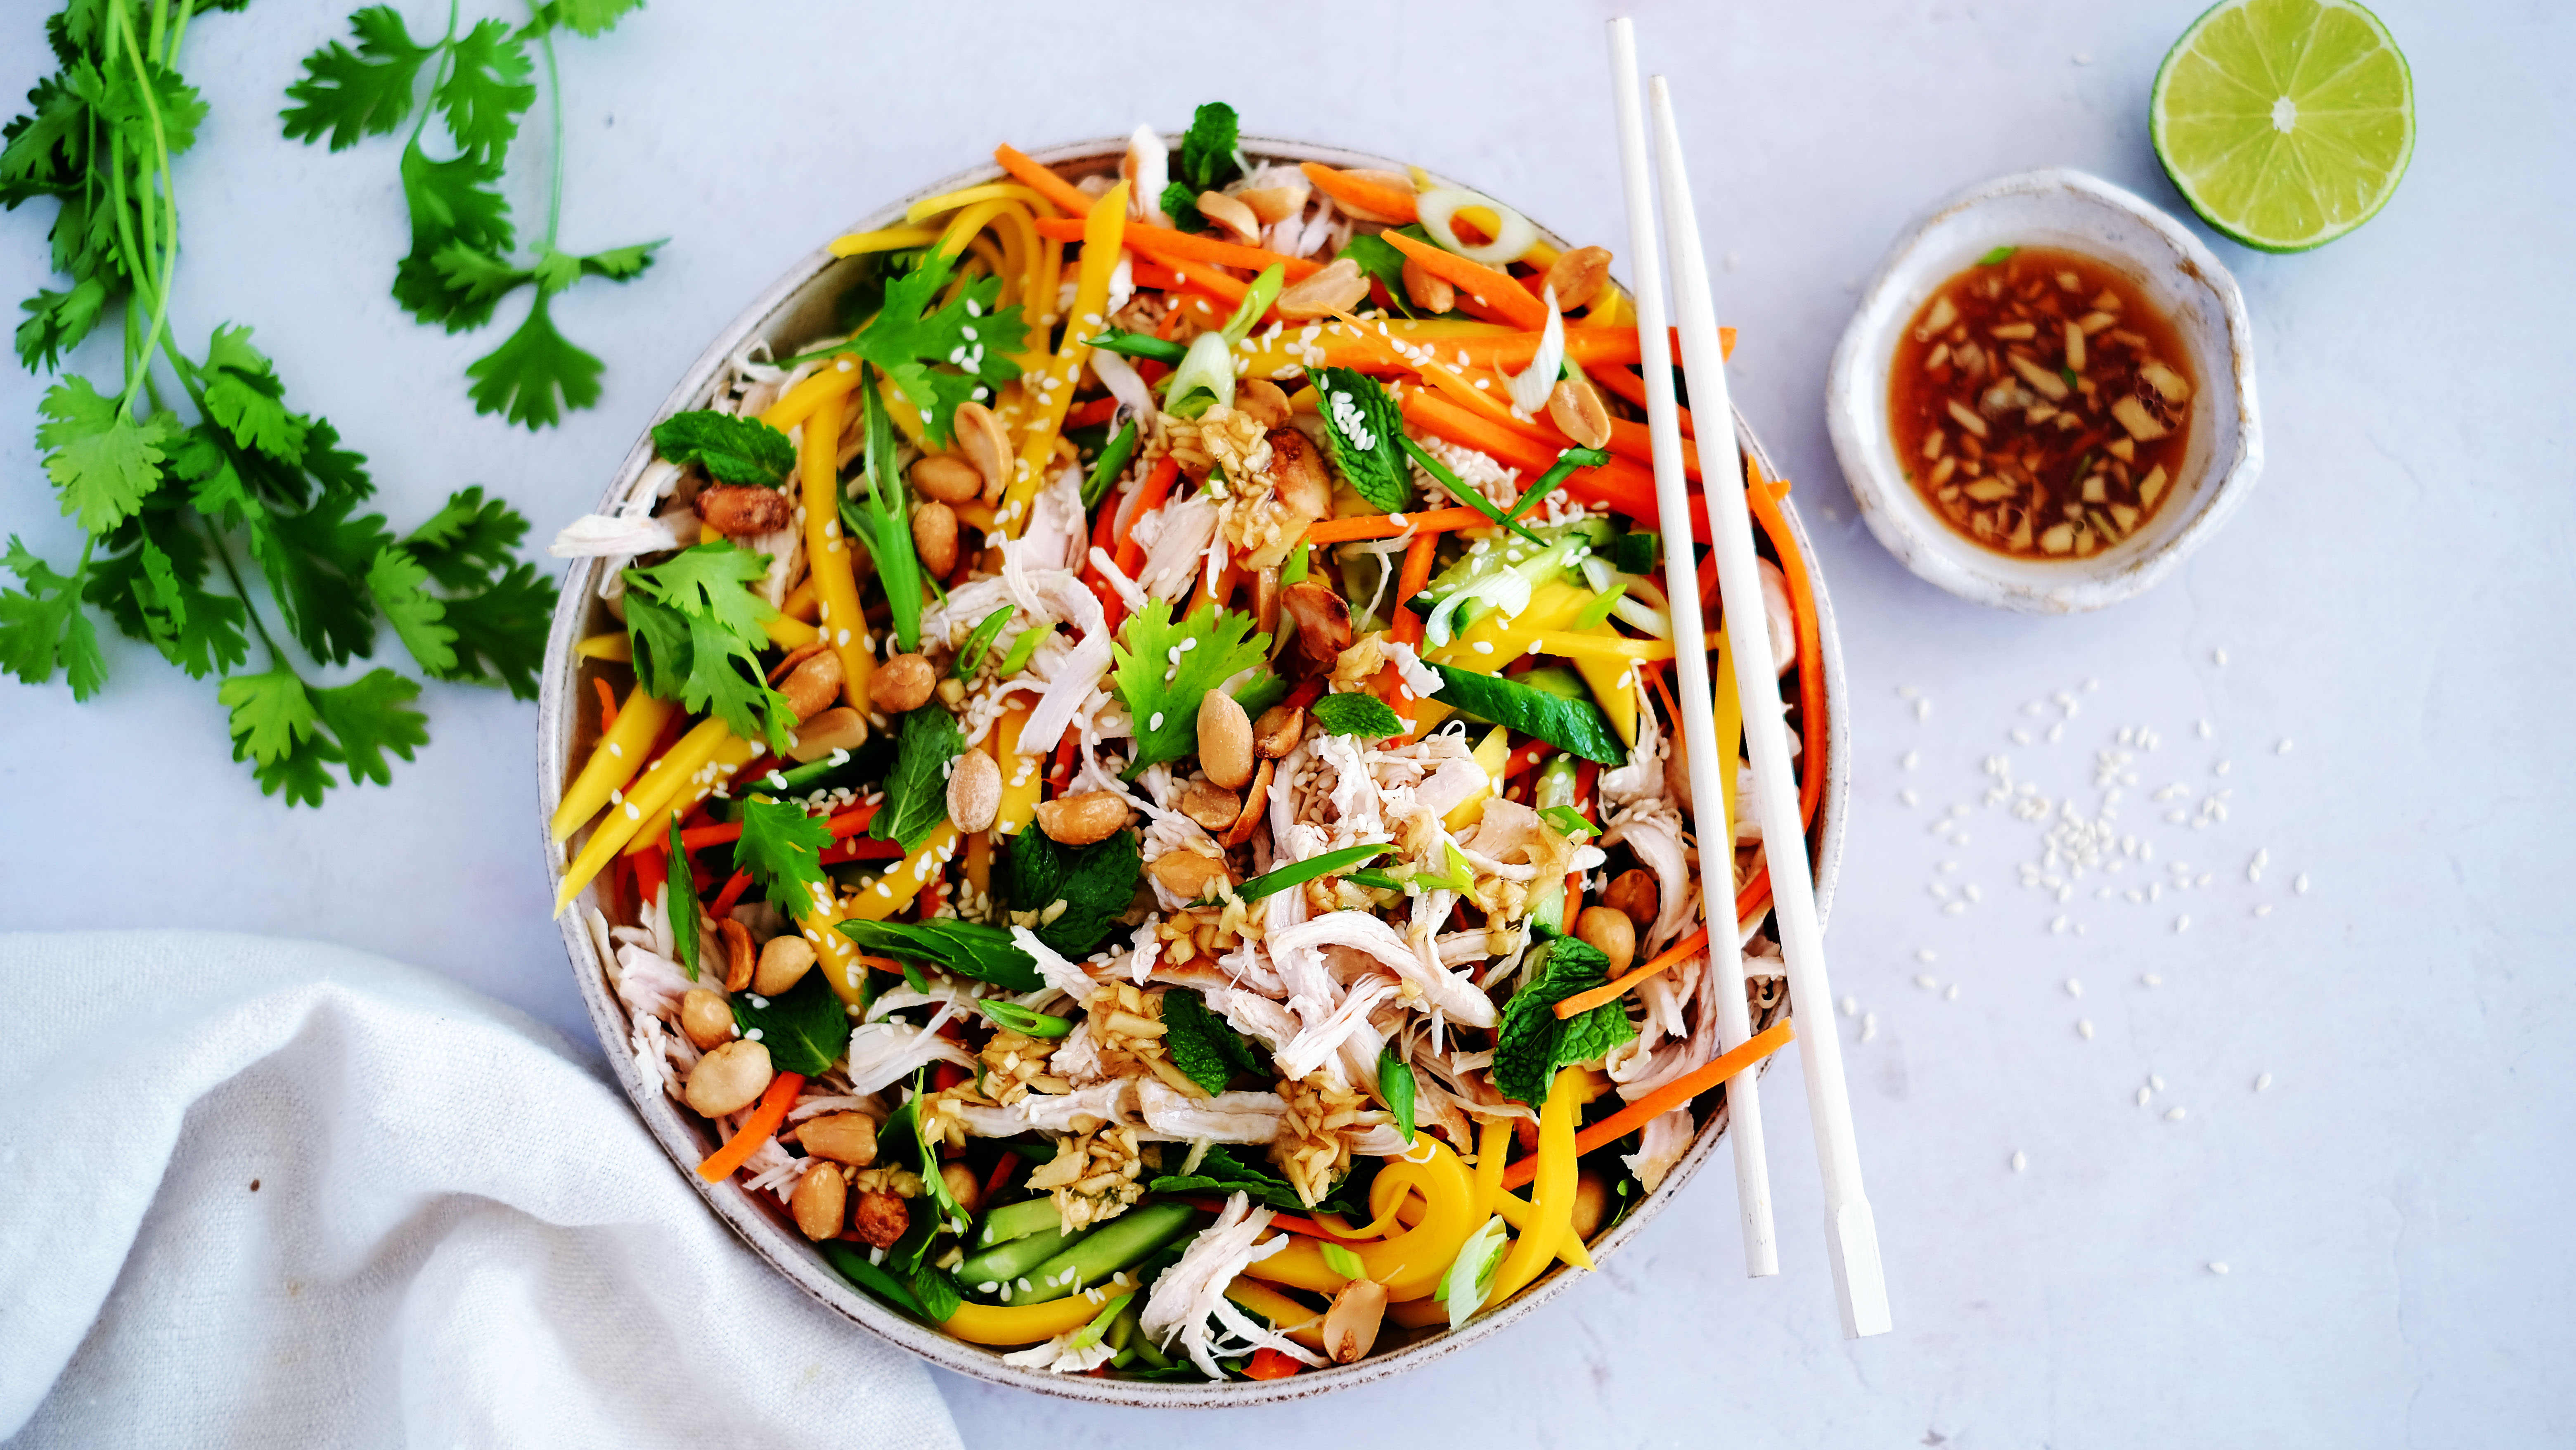 Shredded Chicken and Mango Salad with Ginger Dressing